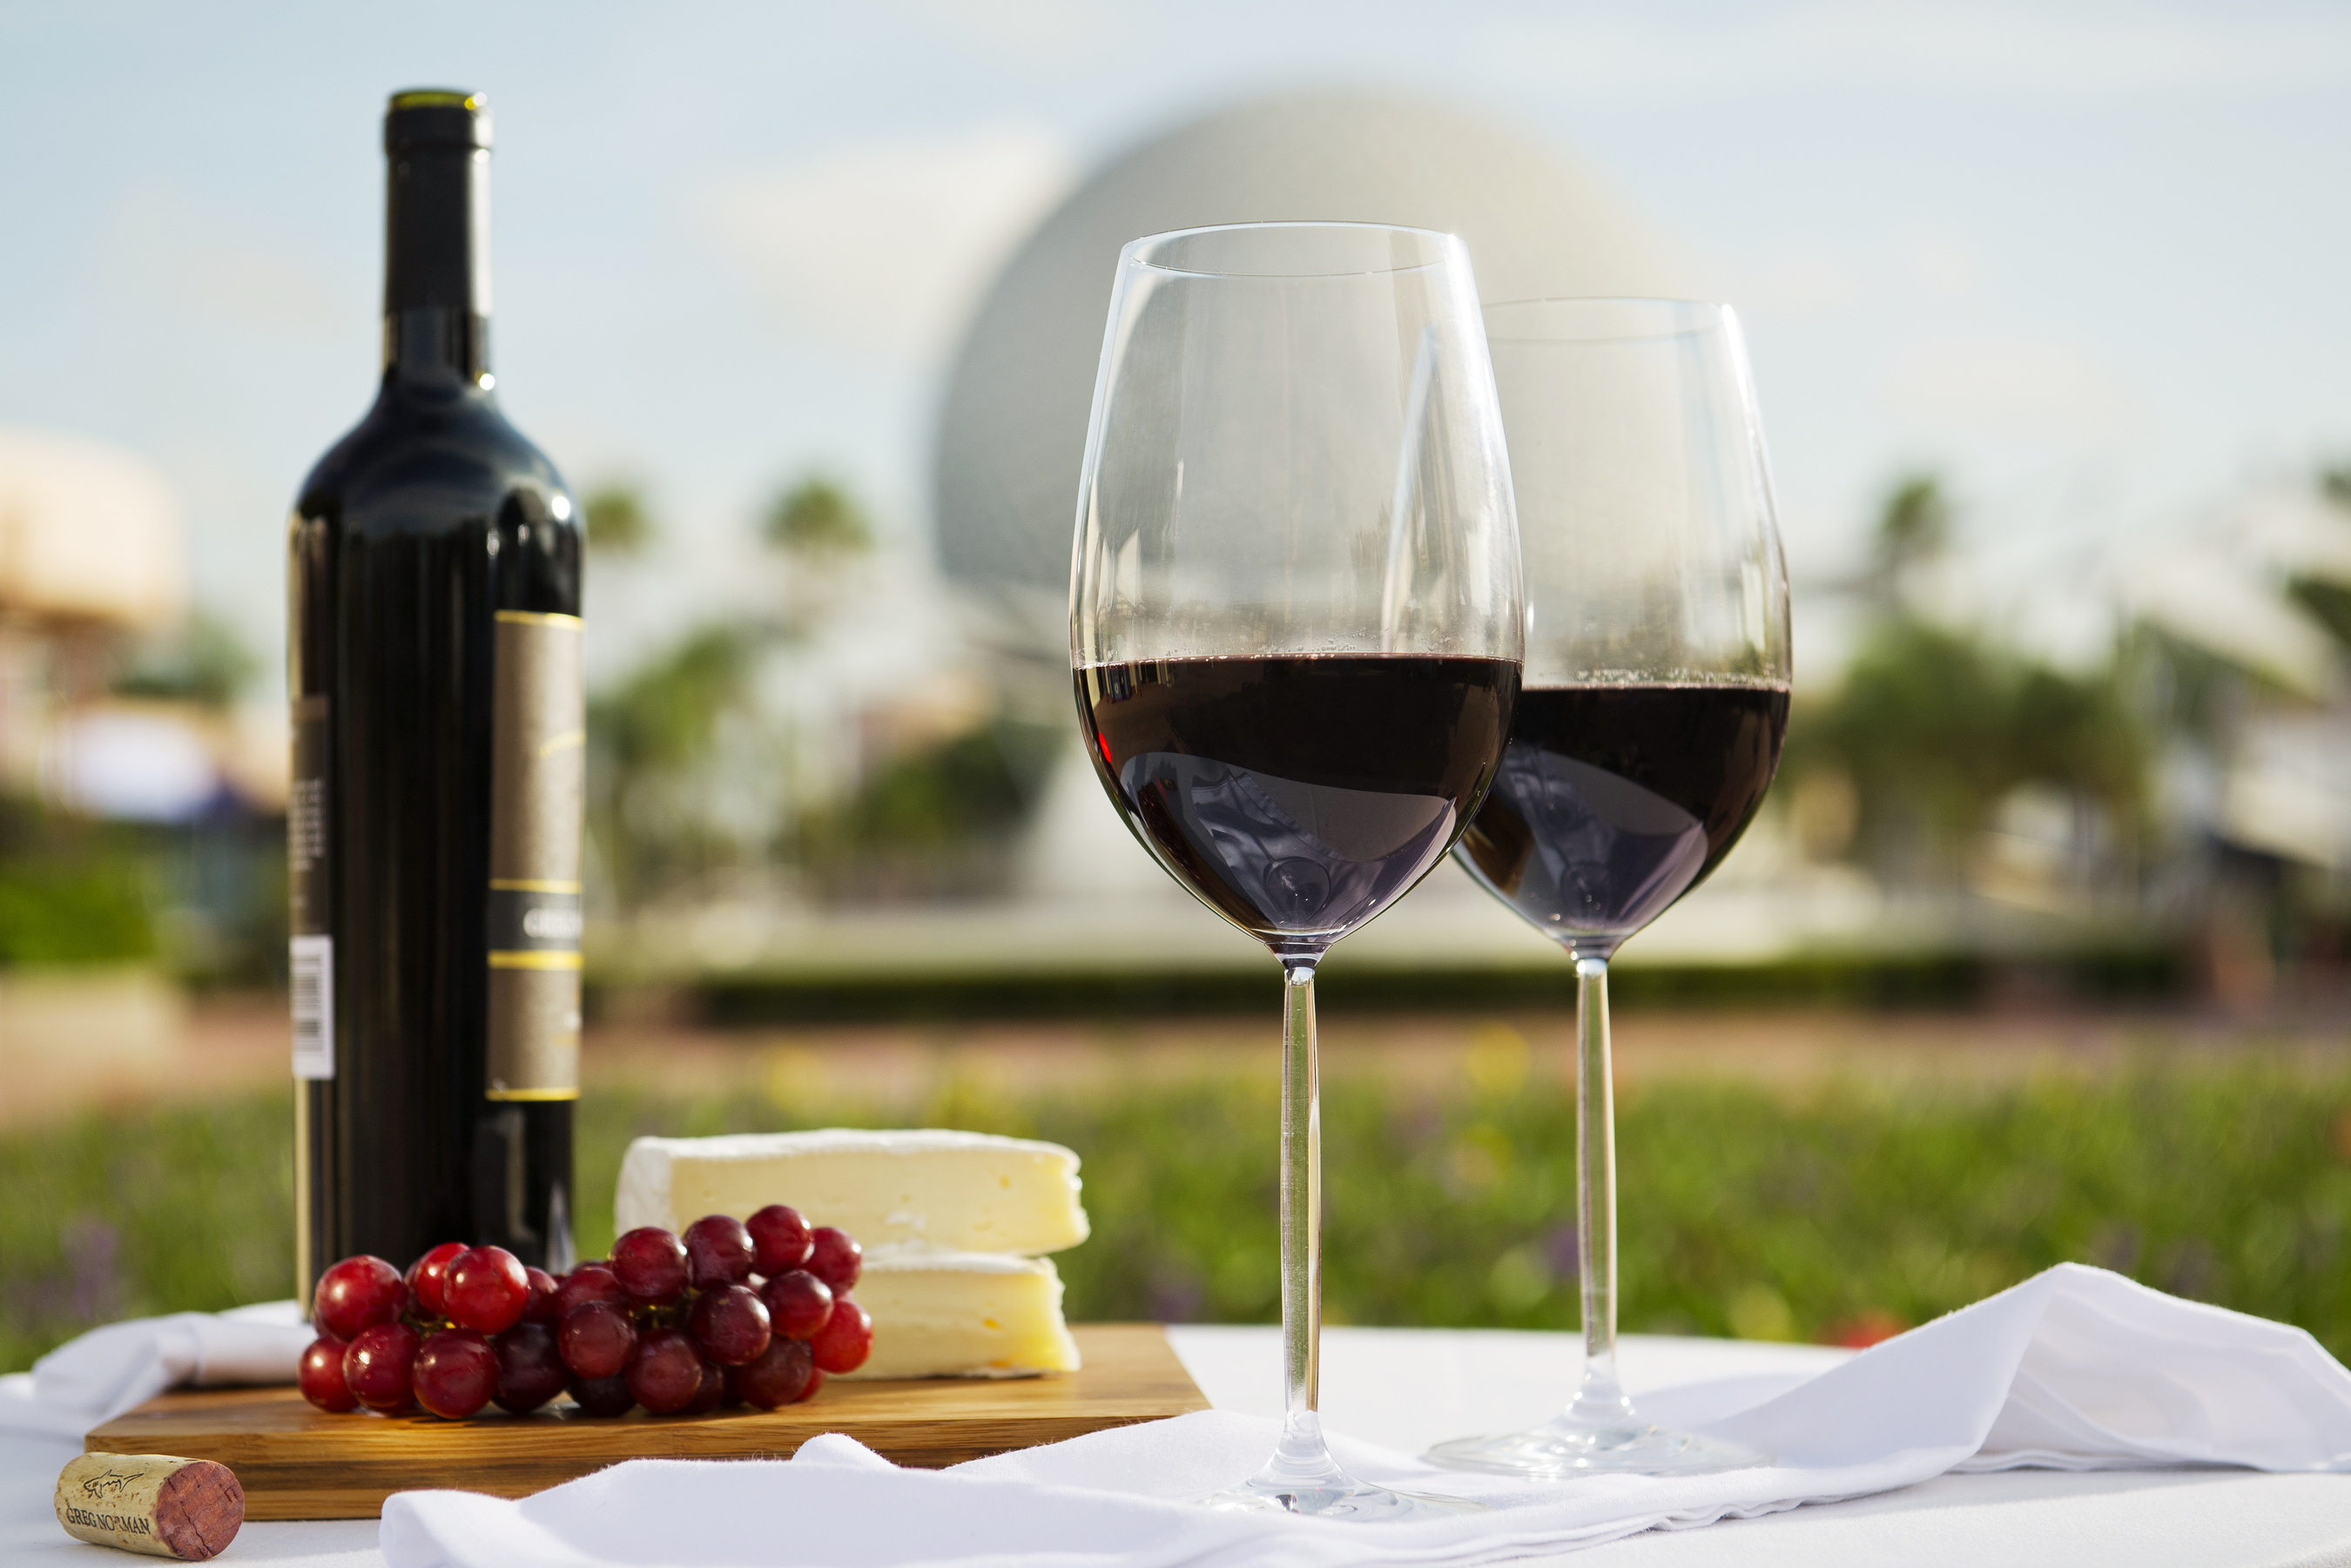 Guests can sample wine, cheese and ethnic tastes from regions around the world Sept. 27 - Nov. 11, 2013 during the 18th annual Epcot International Food & Wine Festival at Walt Disney World Resort in Lake Buena Vista, Fla. (Matt Stroshane, photographer)